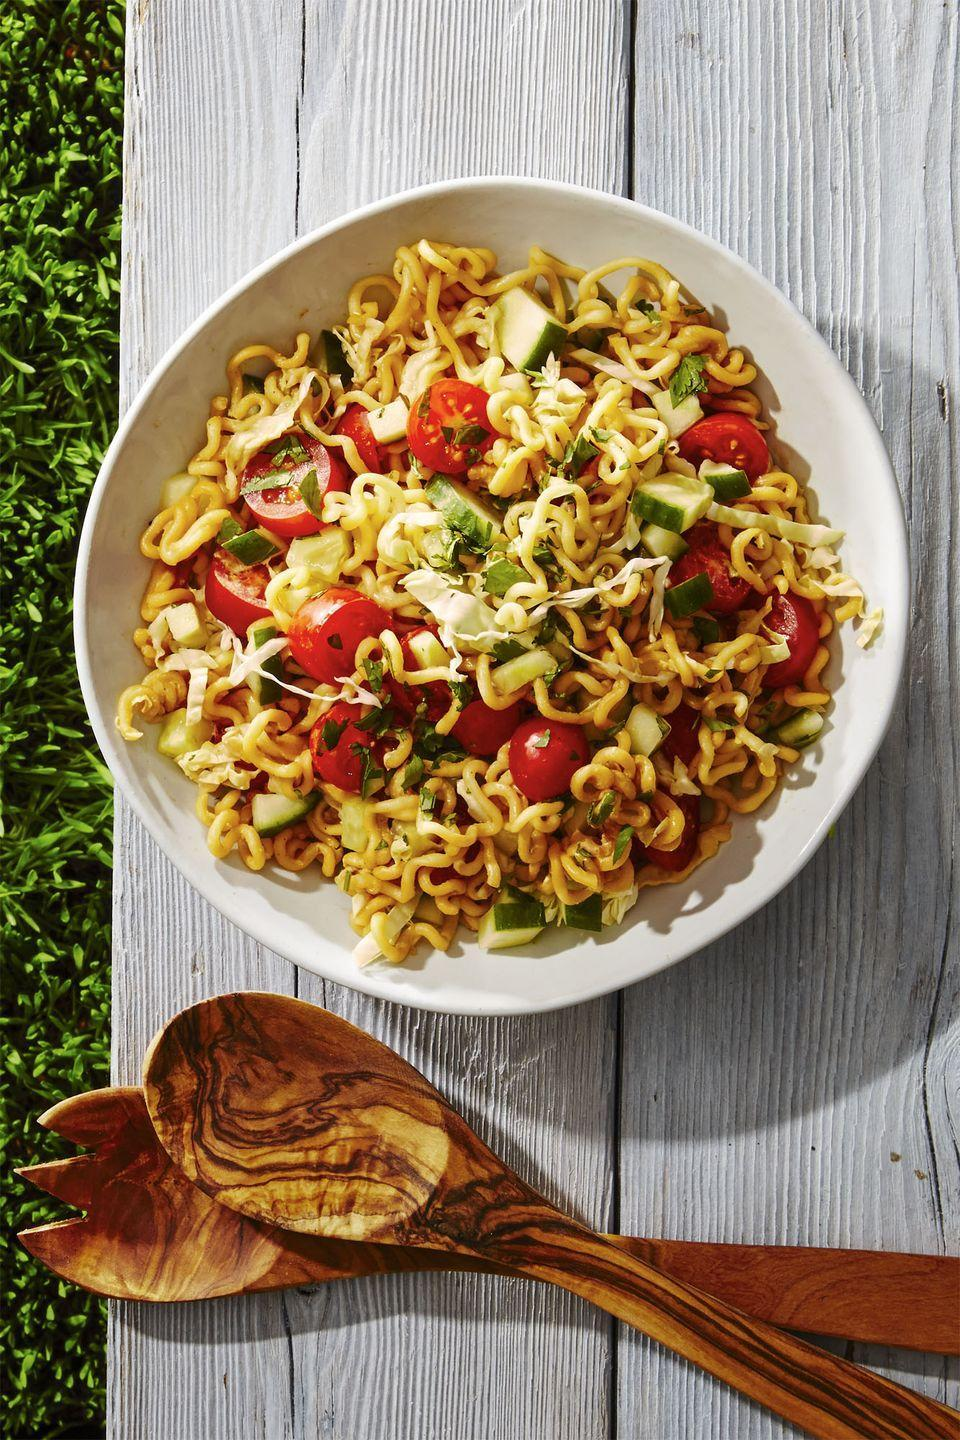 """<p>Your fave dorm dinner becomes a sweet and sour side with some help from sliced veggies and a tahini soy dressing.</p><p><em><a href=""""https://www.goodhousekeeping.com/food-recipes/a39330/honey-lime-ramen-salad-recipe/"""" rel=""""nofollow noopener"""" target=""""_blank"""" data-ylk=""""slk:Get the recipe for Honey-Lime Ramen Salad »"""" class=""""link rapid-noclick-resp"""">Get the recipe for Honey-Lime Ramen Salad »</a></em></p>"""